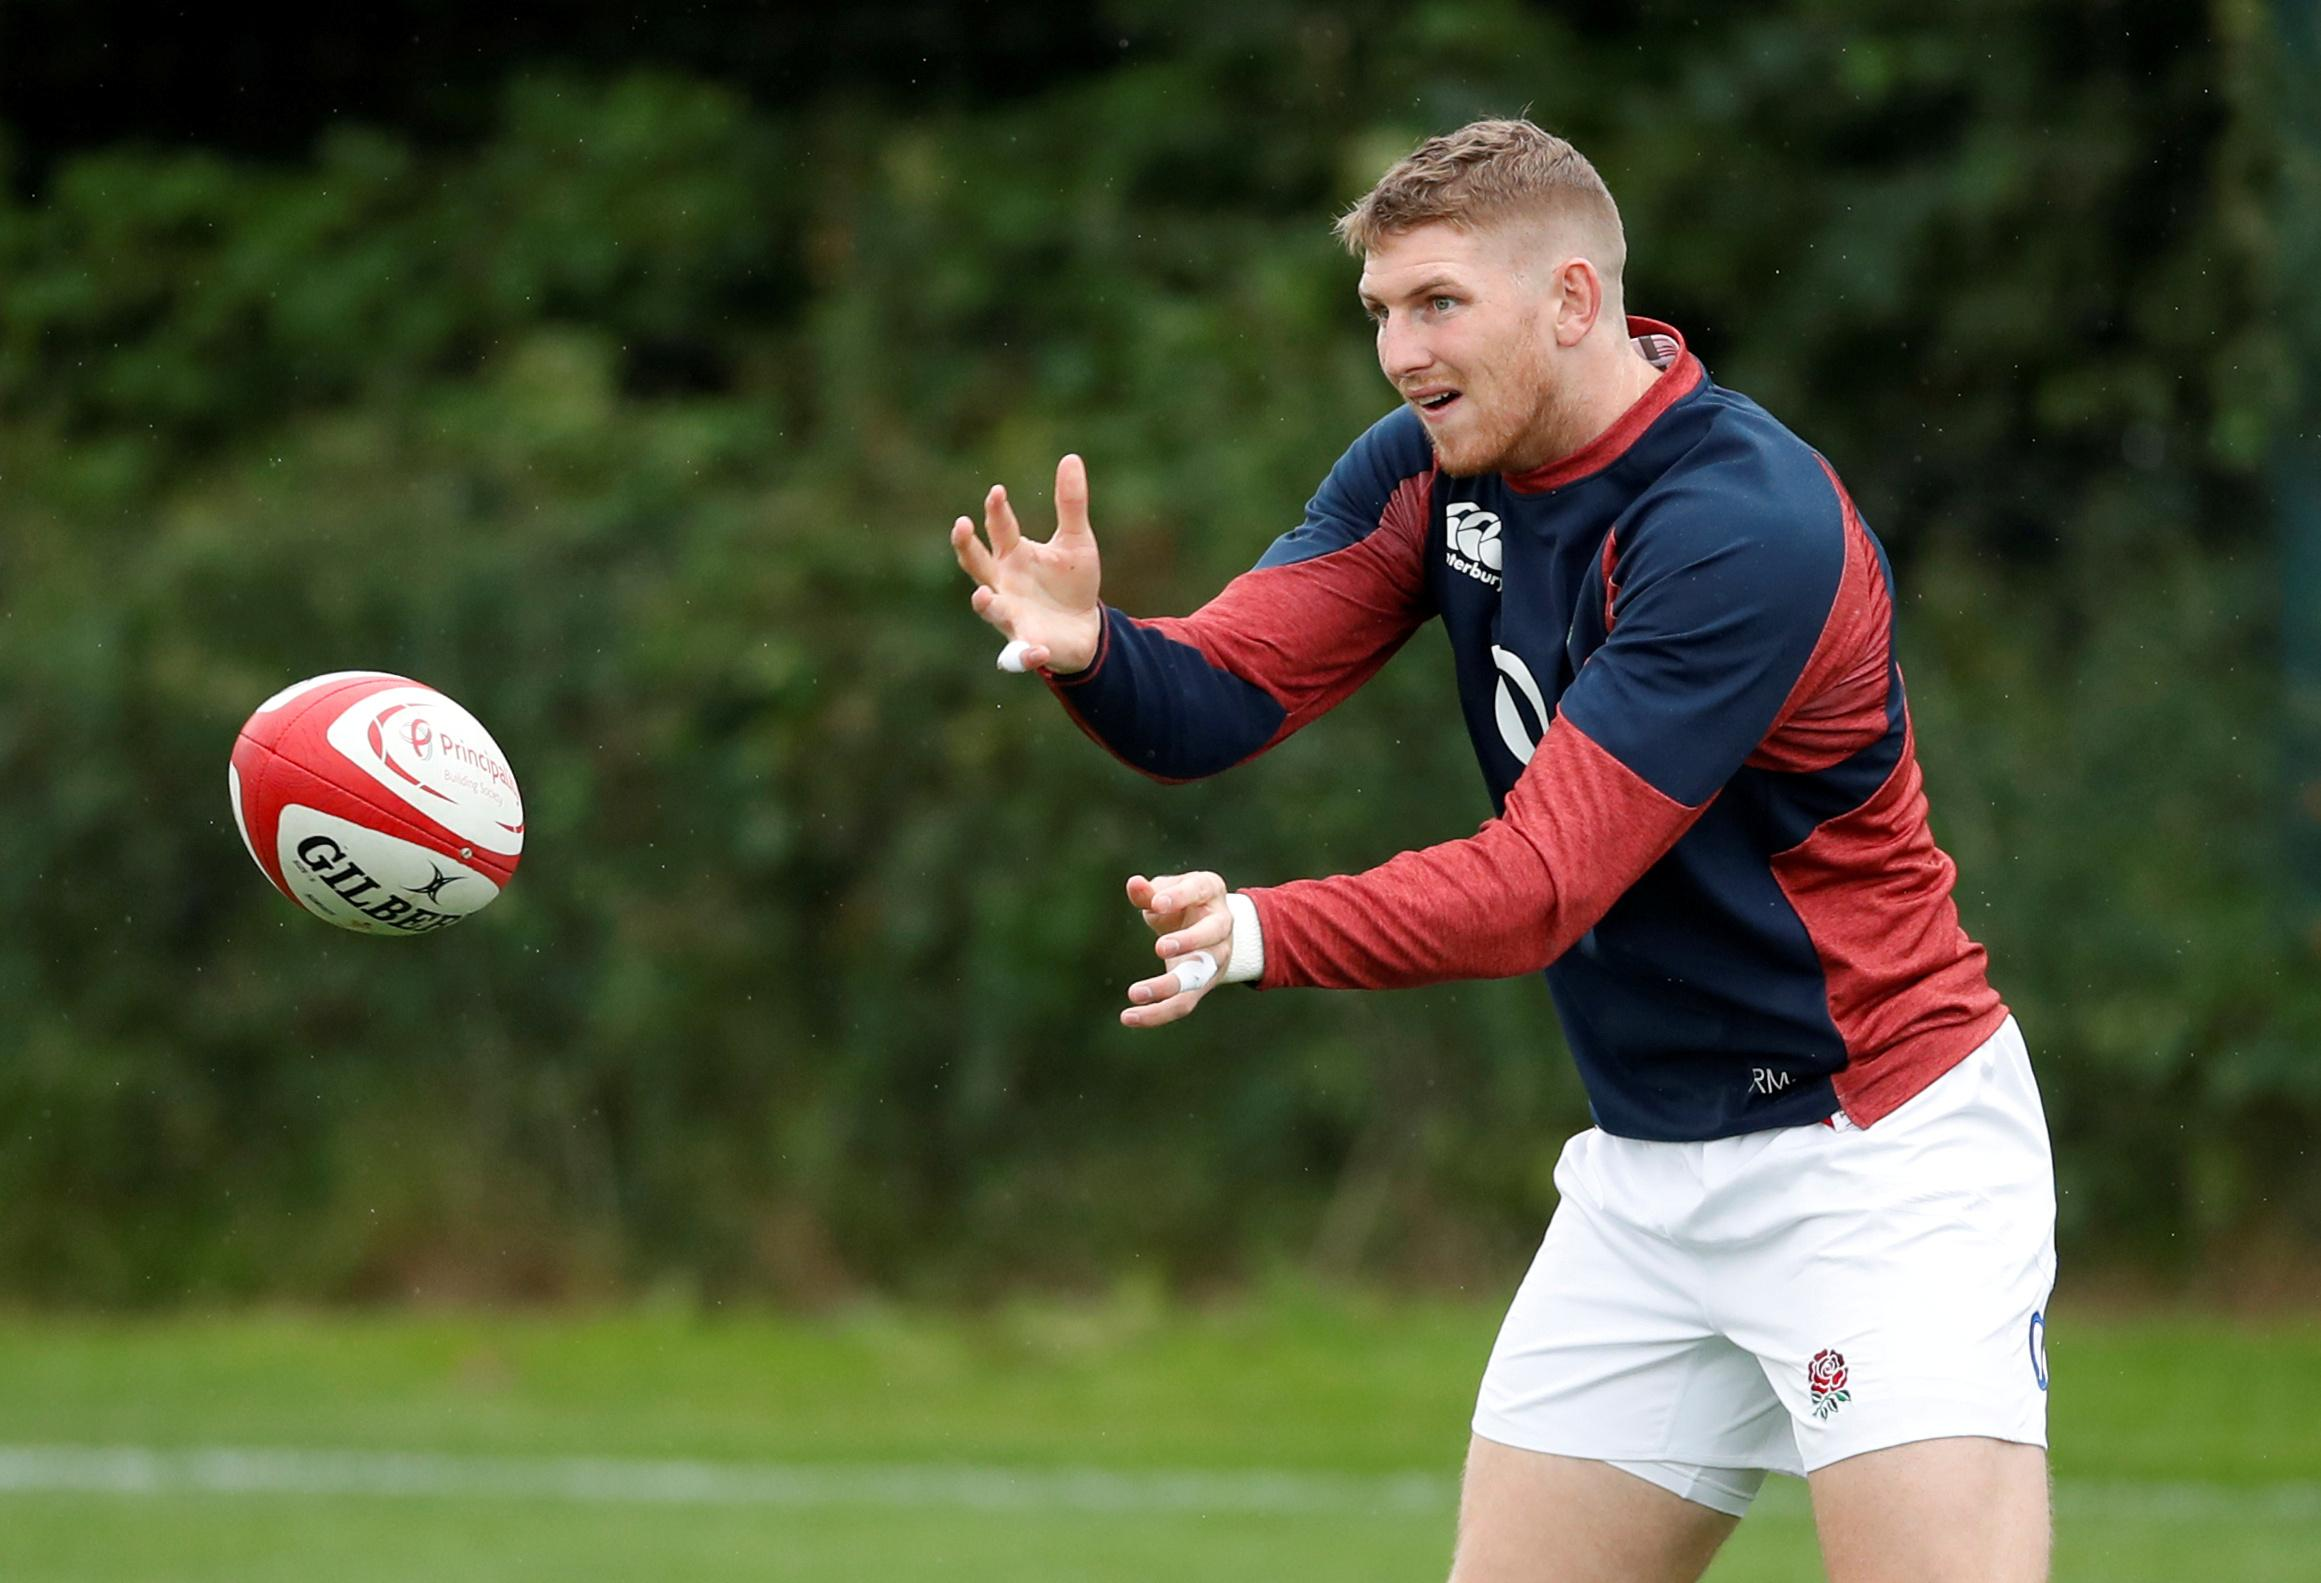 England's McConnochie to miss Wales clash with muscle strain